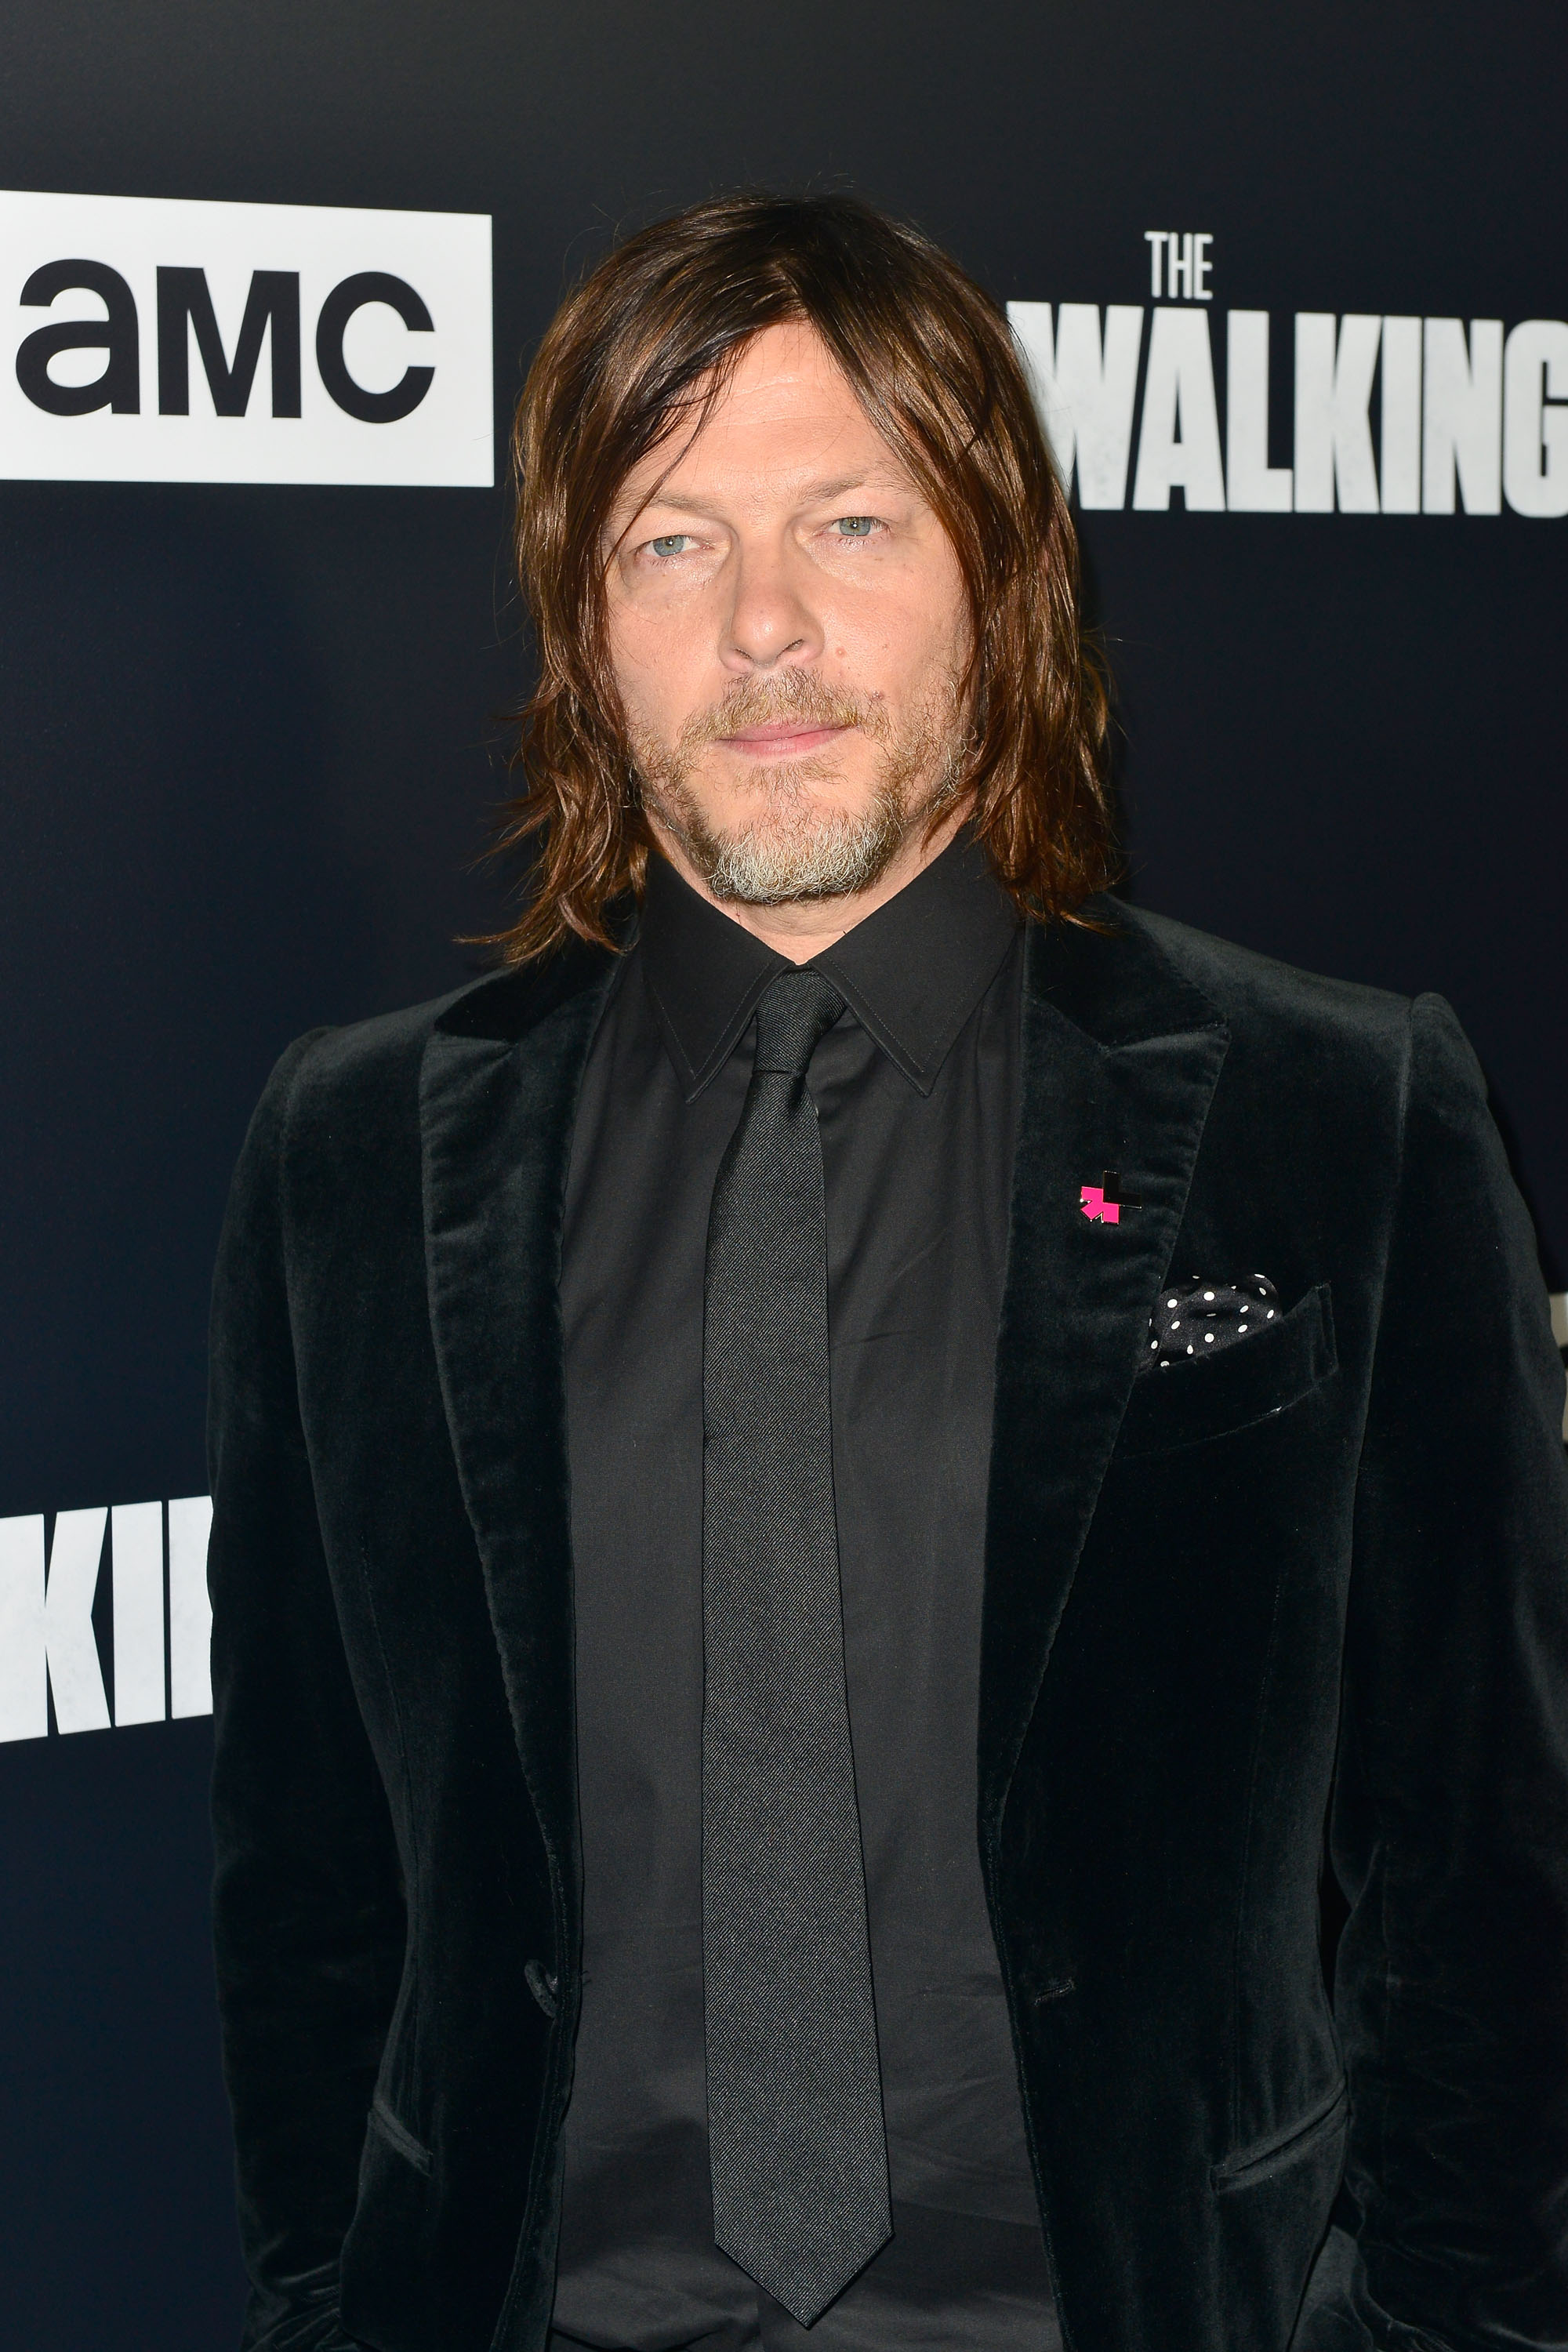 Norman Reedus arrives at the Premiere Of AMC's 'The Walking Dead' Season 9 at the DGA Theater on September 27, 2018 in Los Angeles, California.